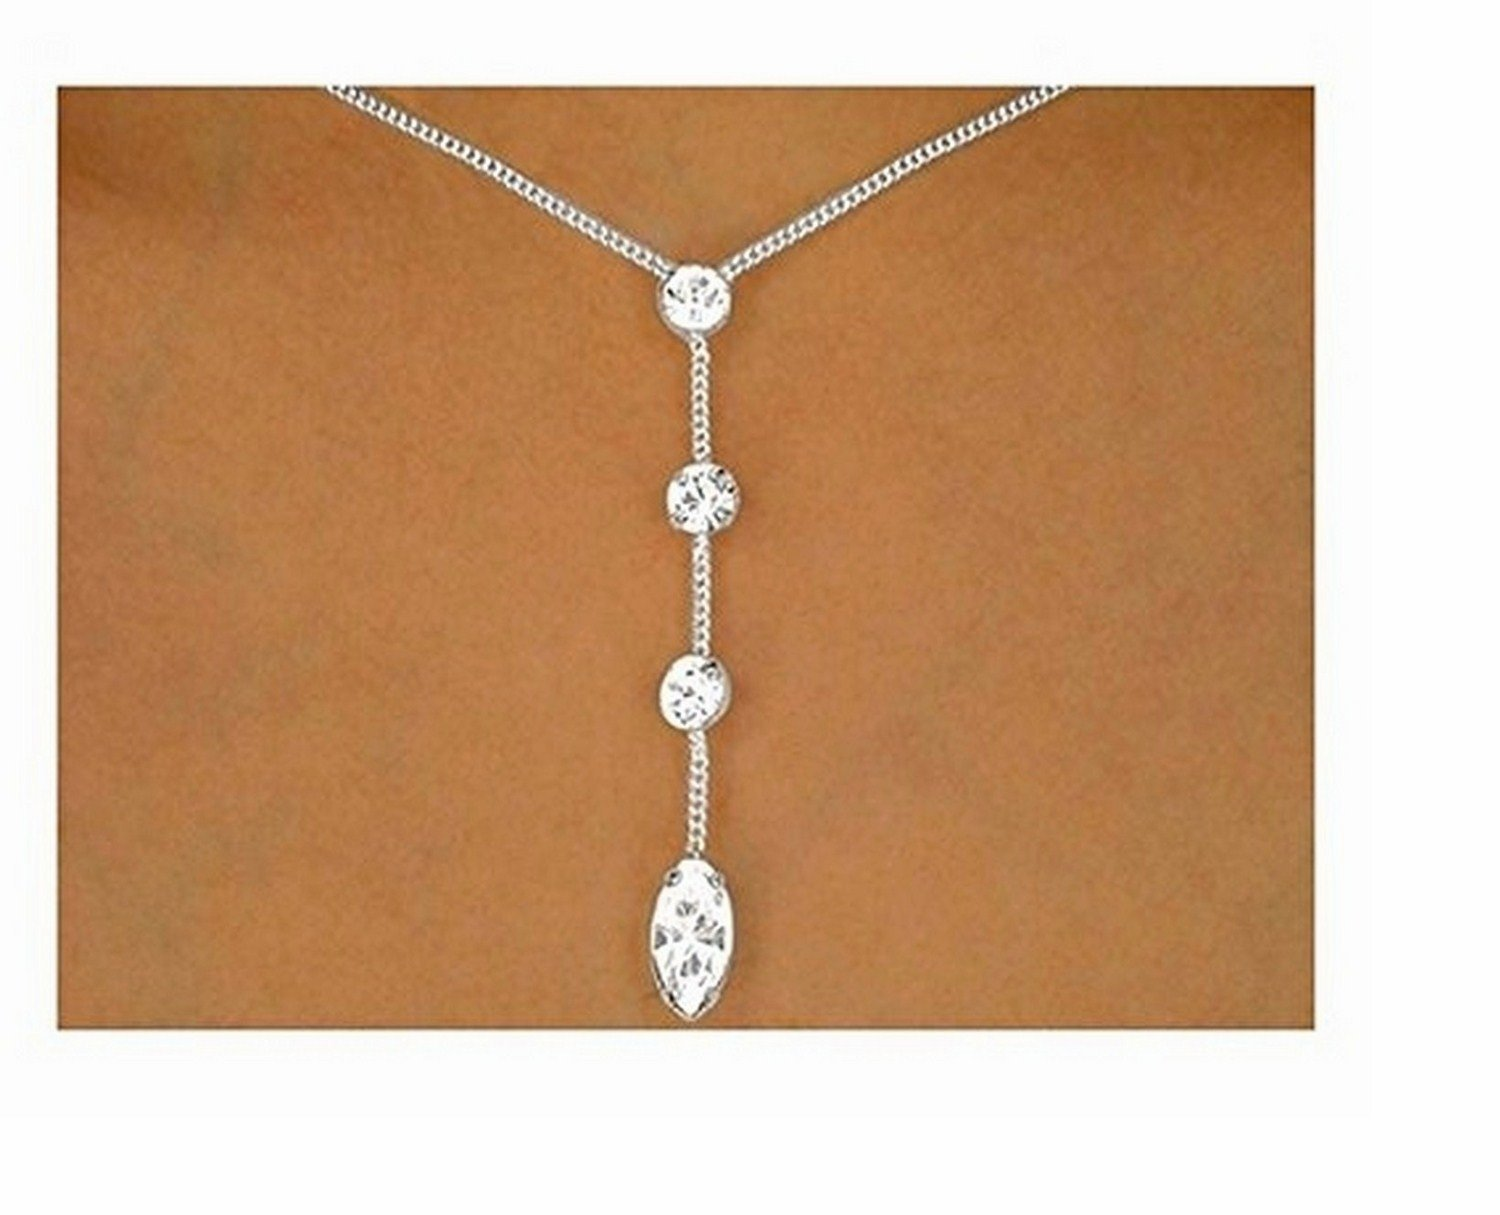 Polished Silver Tone Multi Austrian Crystal Strand Drop Necklace & Earring Set by Lonestar Jewelry